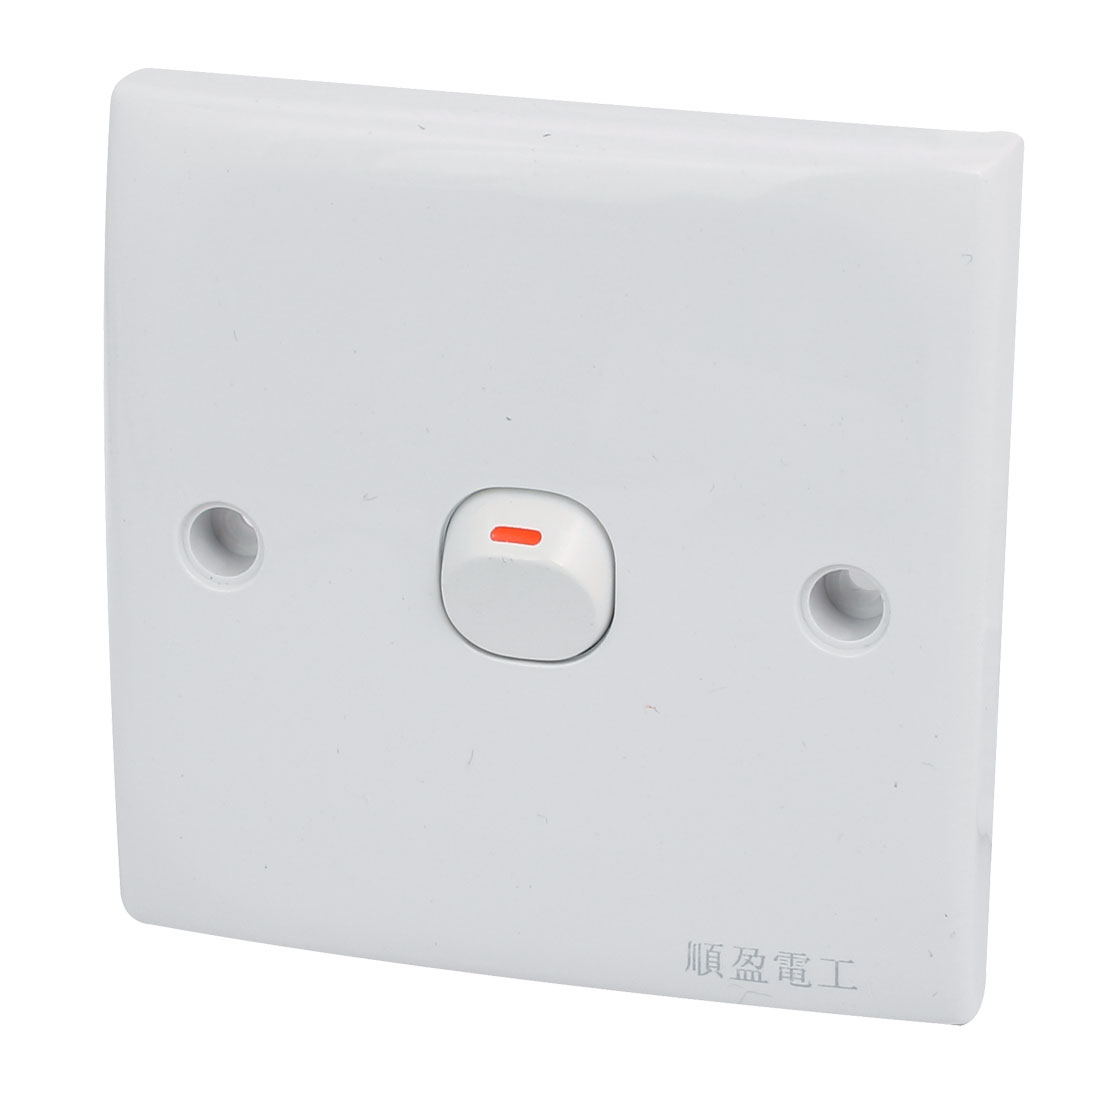 Button Light Switch Wall Plate White On/Off 250V 10A Self Locking Latching